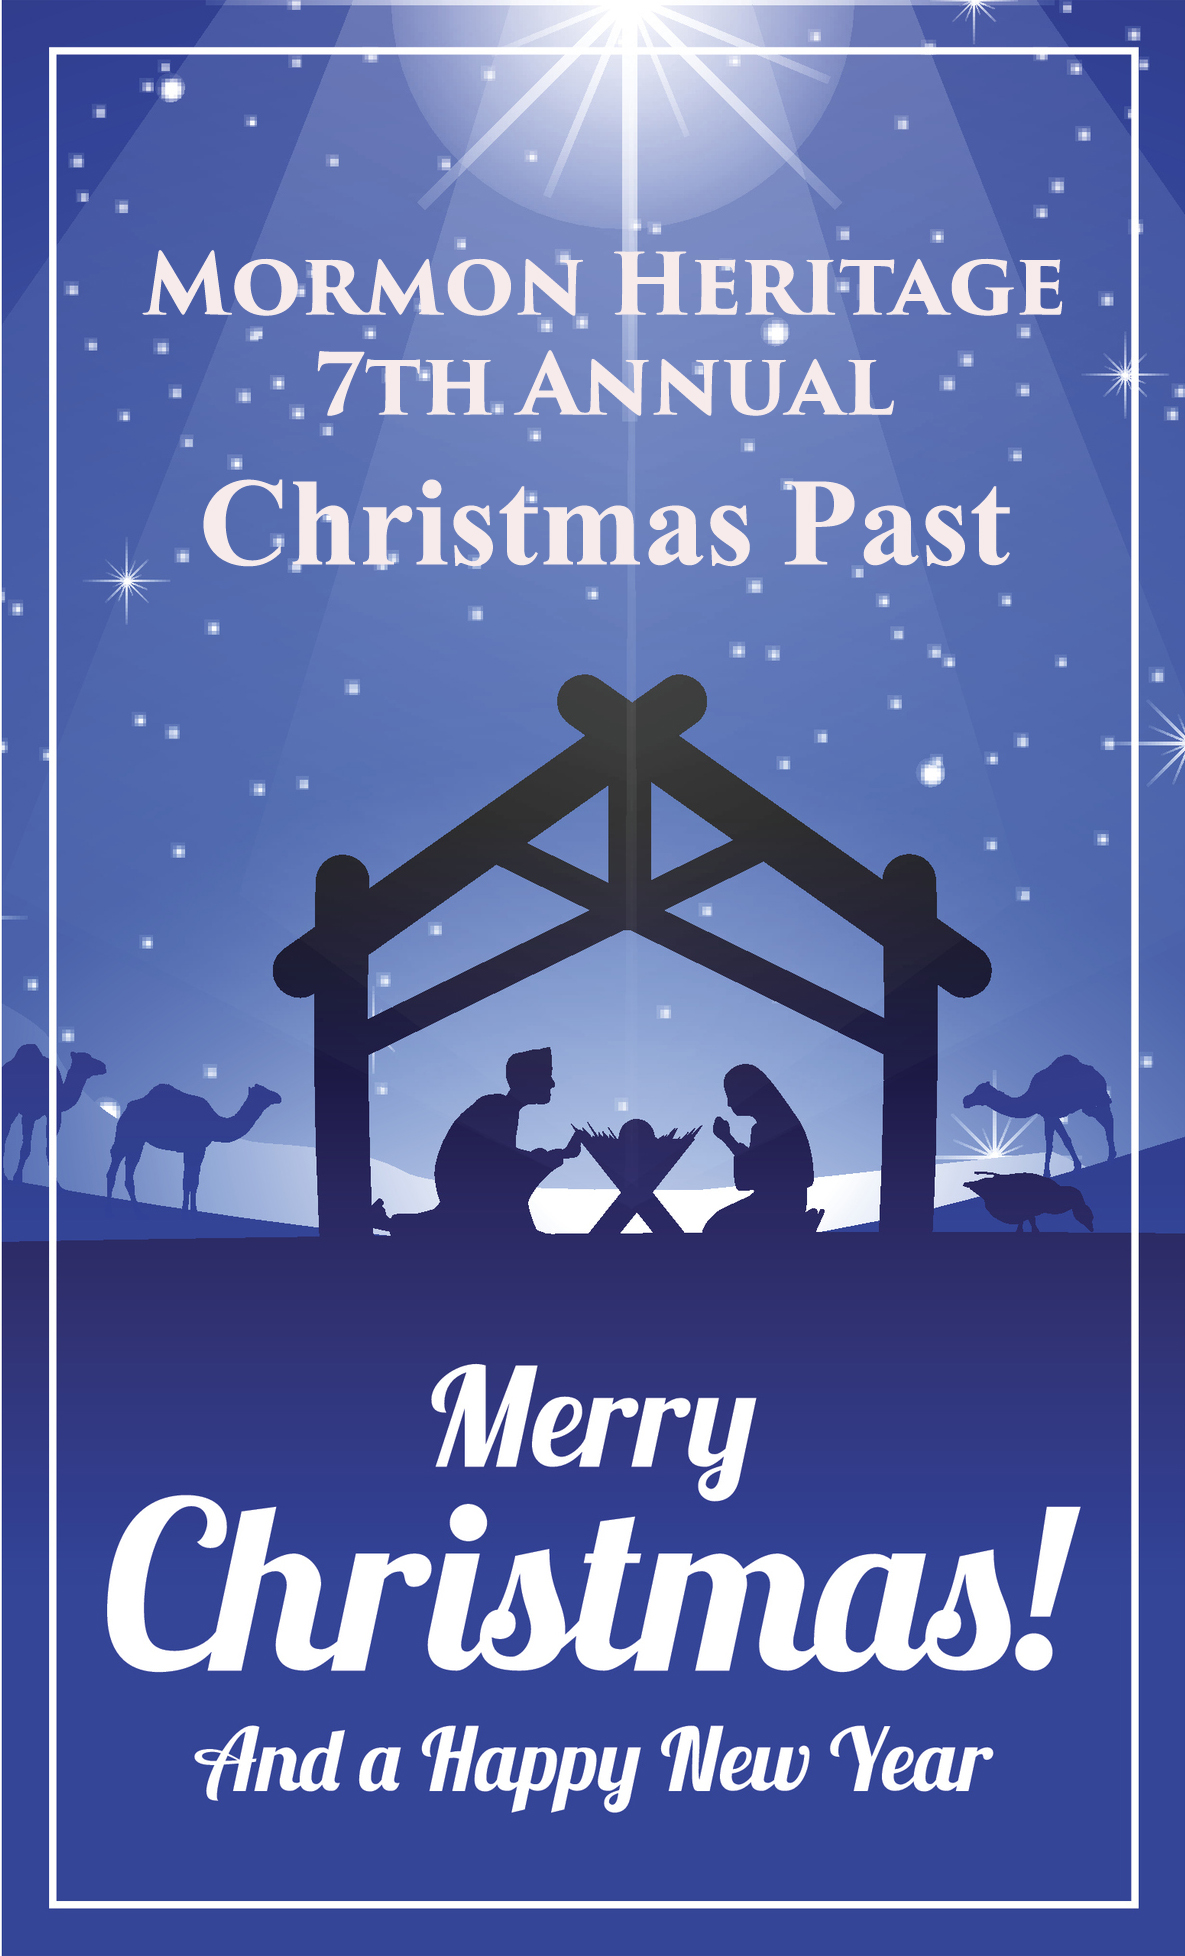 10th Day Christmas Past Question & Story | Mormon Heritage